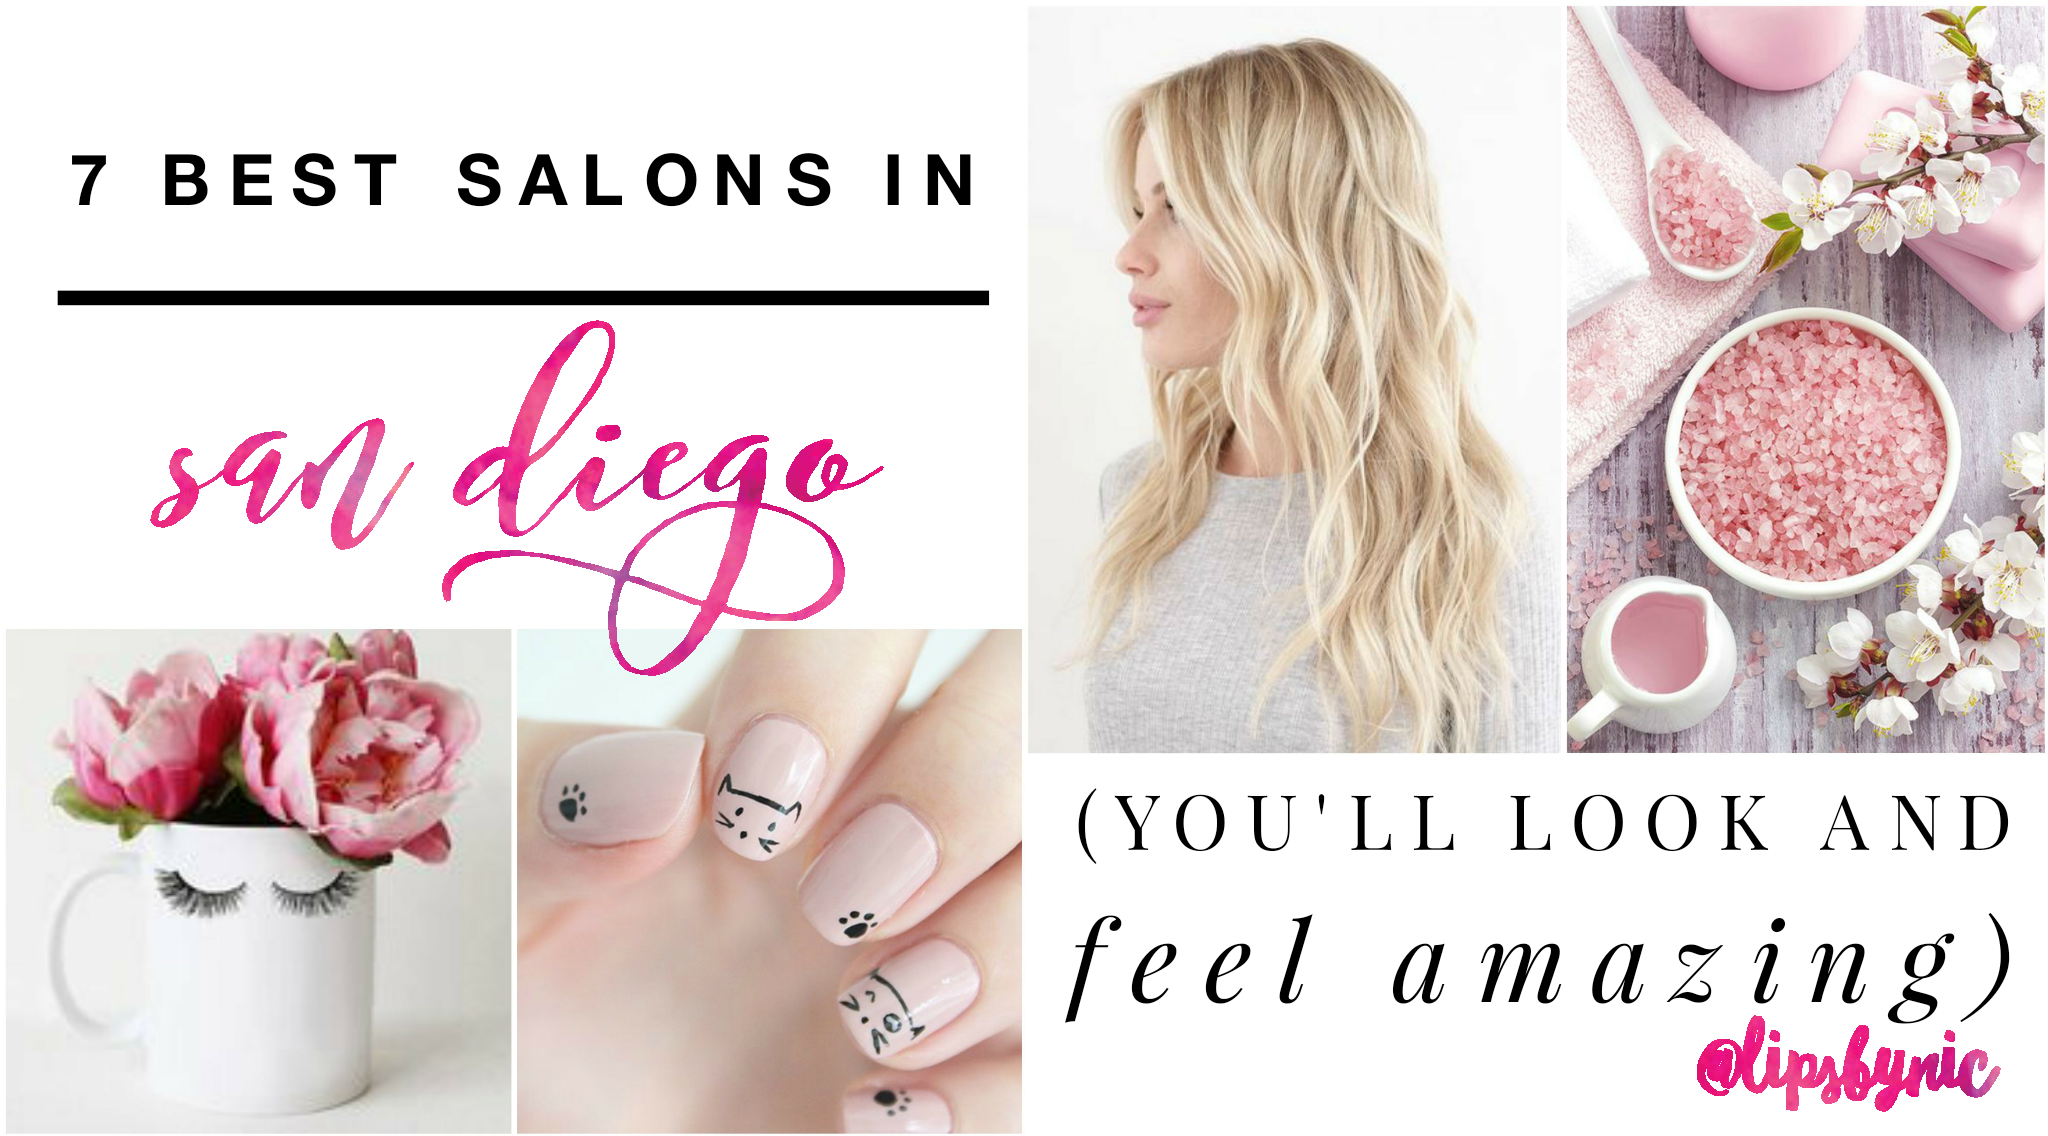 Looking for the best salons and spas in San Diego?  You've come to the right place!  Check out my honest reviews on my go-to spots in San Diego for all things beauty.